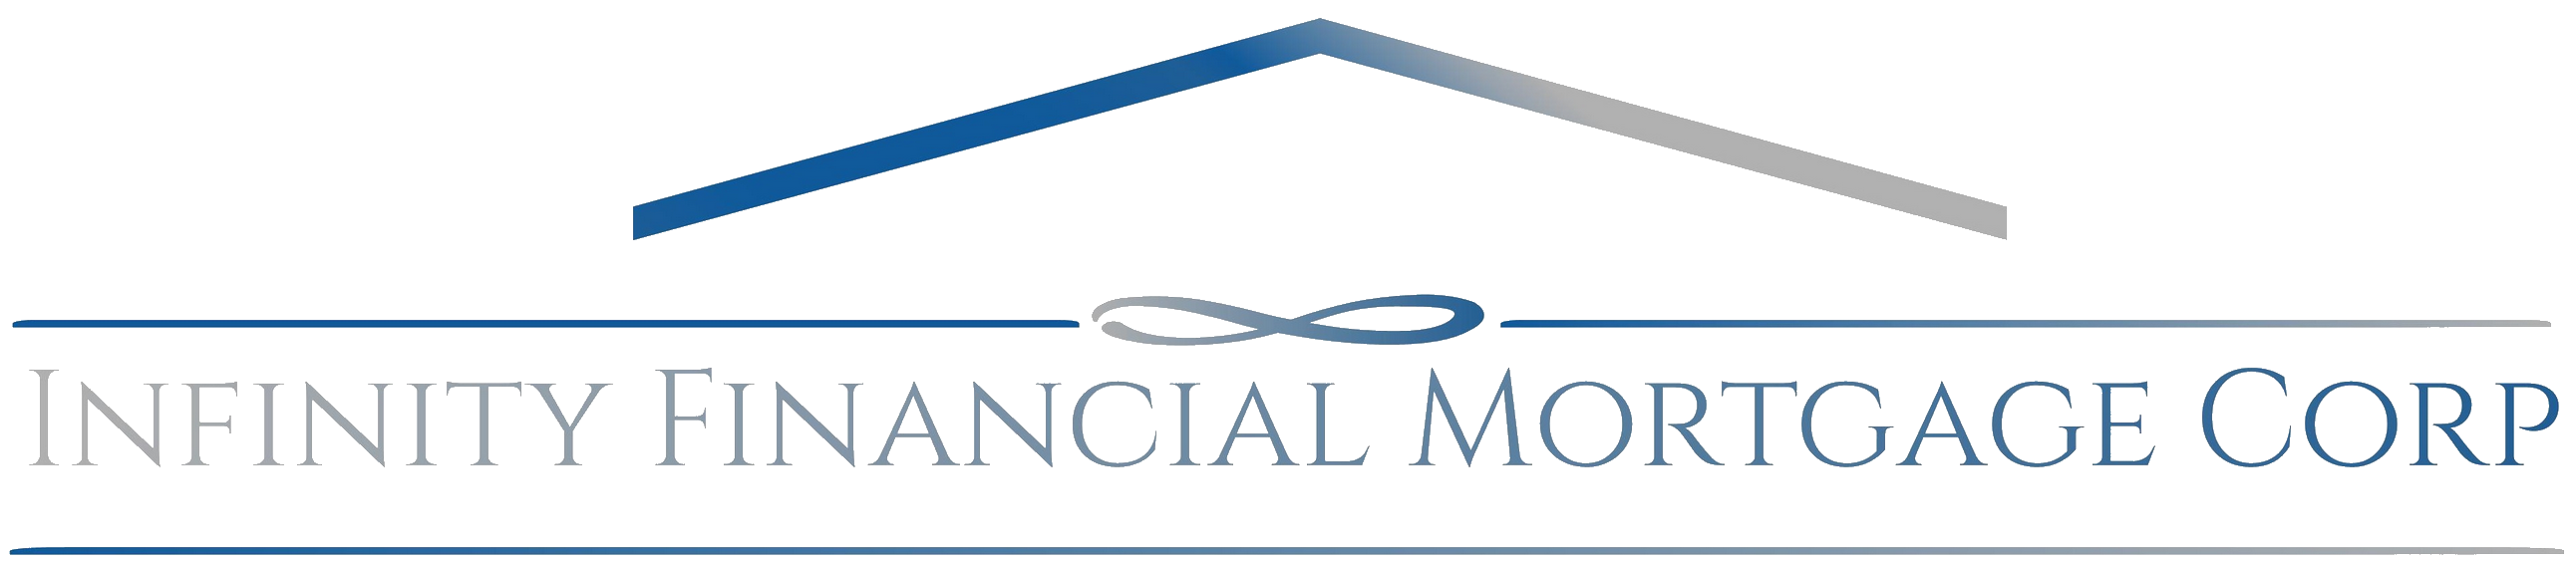 Infinity Financial Mortgage Corporation